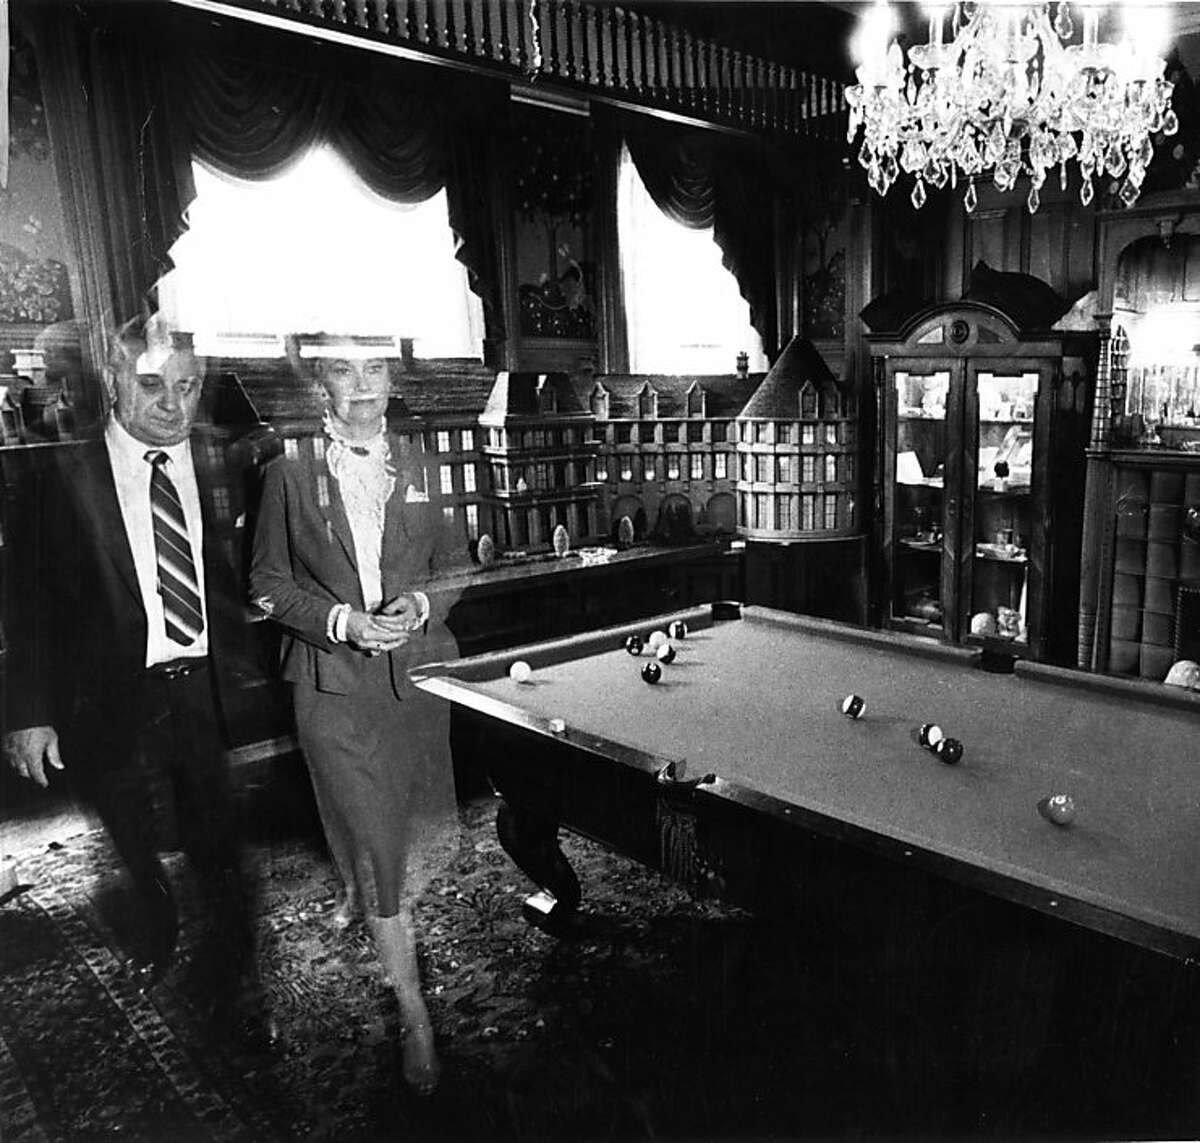 Ed and Lorraine Warren Demonologists at the Masions Hotel on Sacramento Street in S.F. The hotel was sold in 2000 and converted to housing. Photo by Gary Fong / The Chronicle Sept. 12, 1982 Ran on: 04-10-2005 Demonologists Ed and Lorraine Warren in the billiard room of the supposedly haunted Mansions Hotel in San Francisco in 1982.